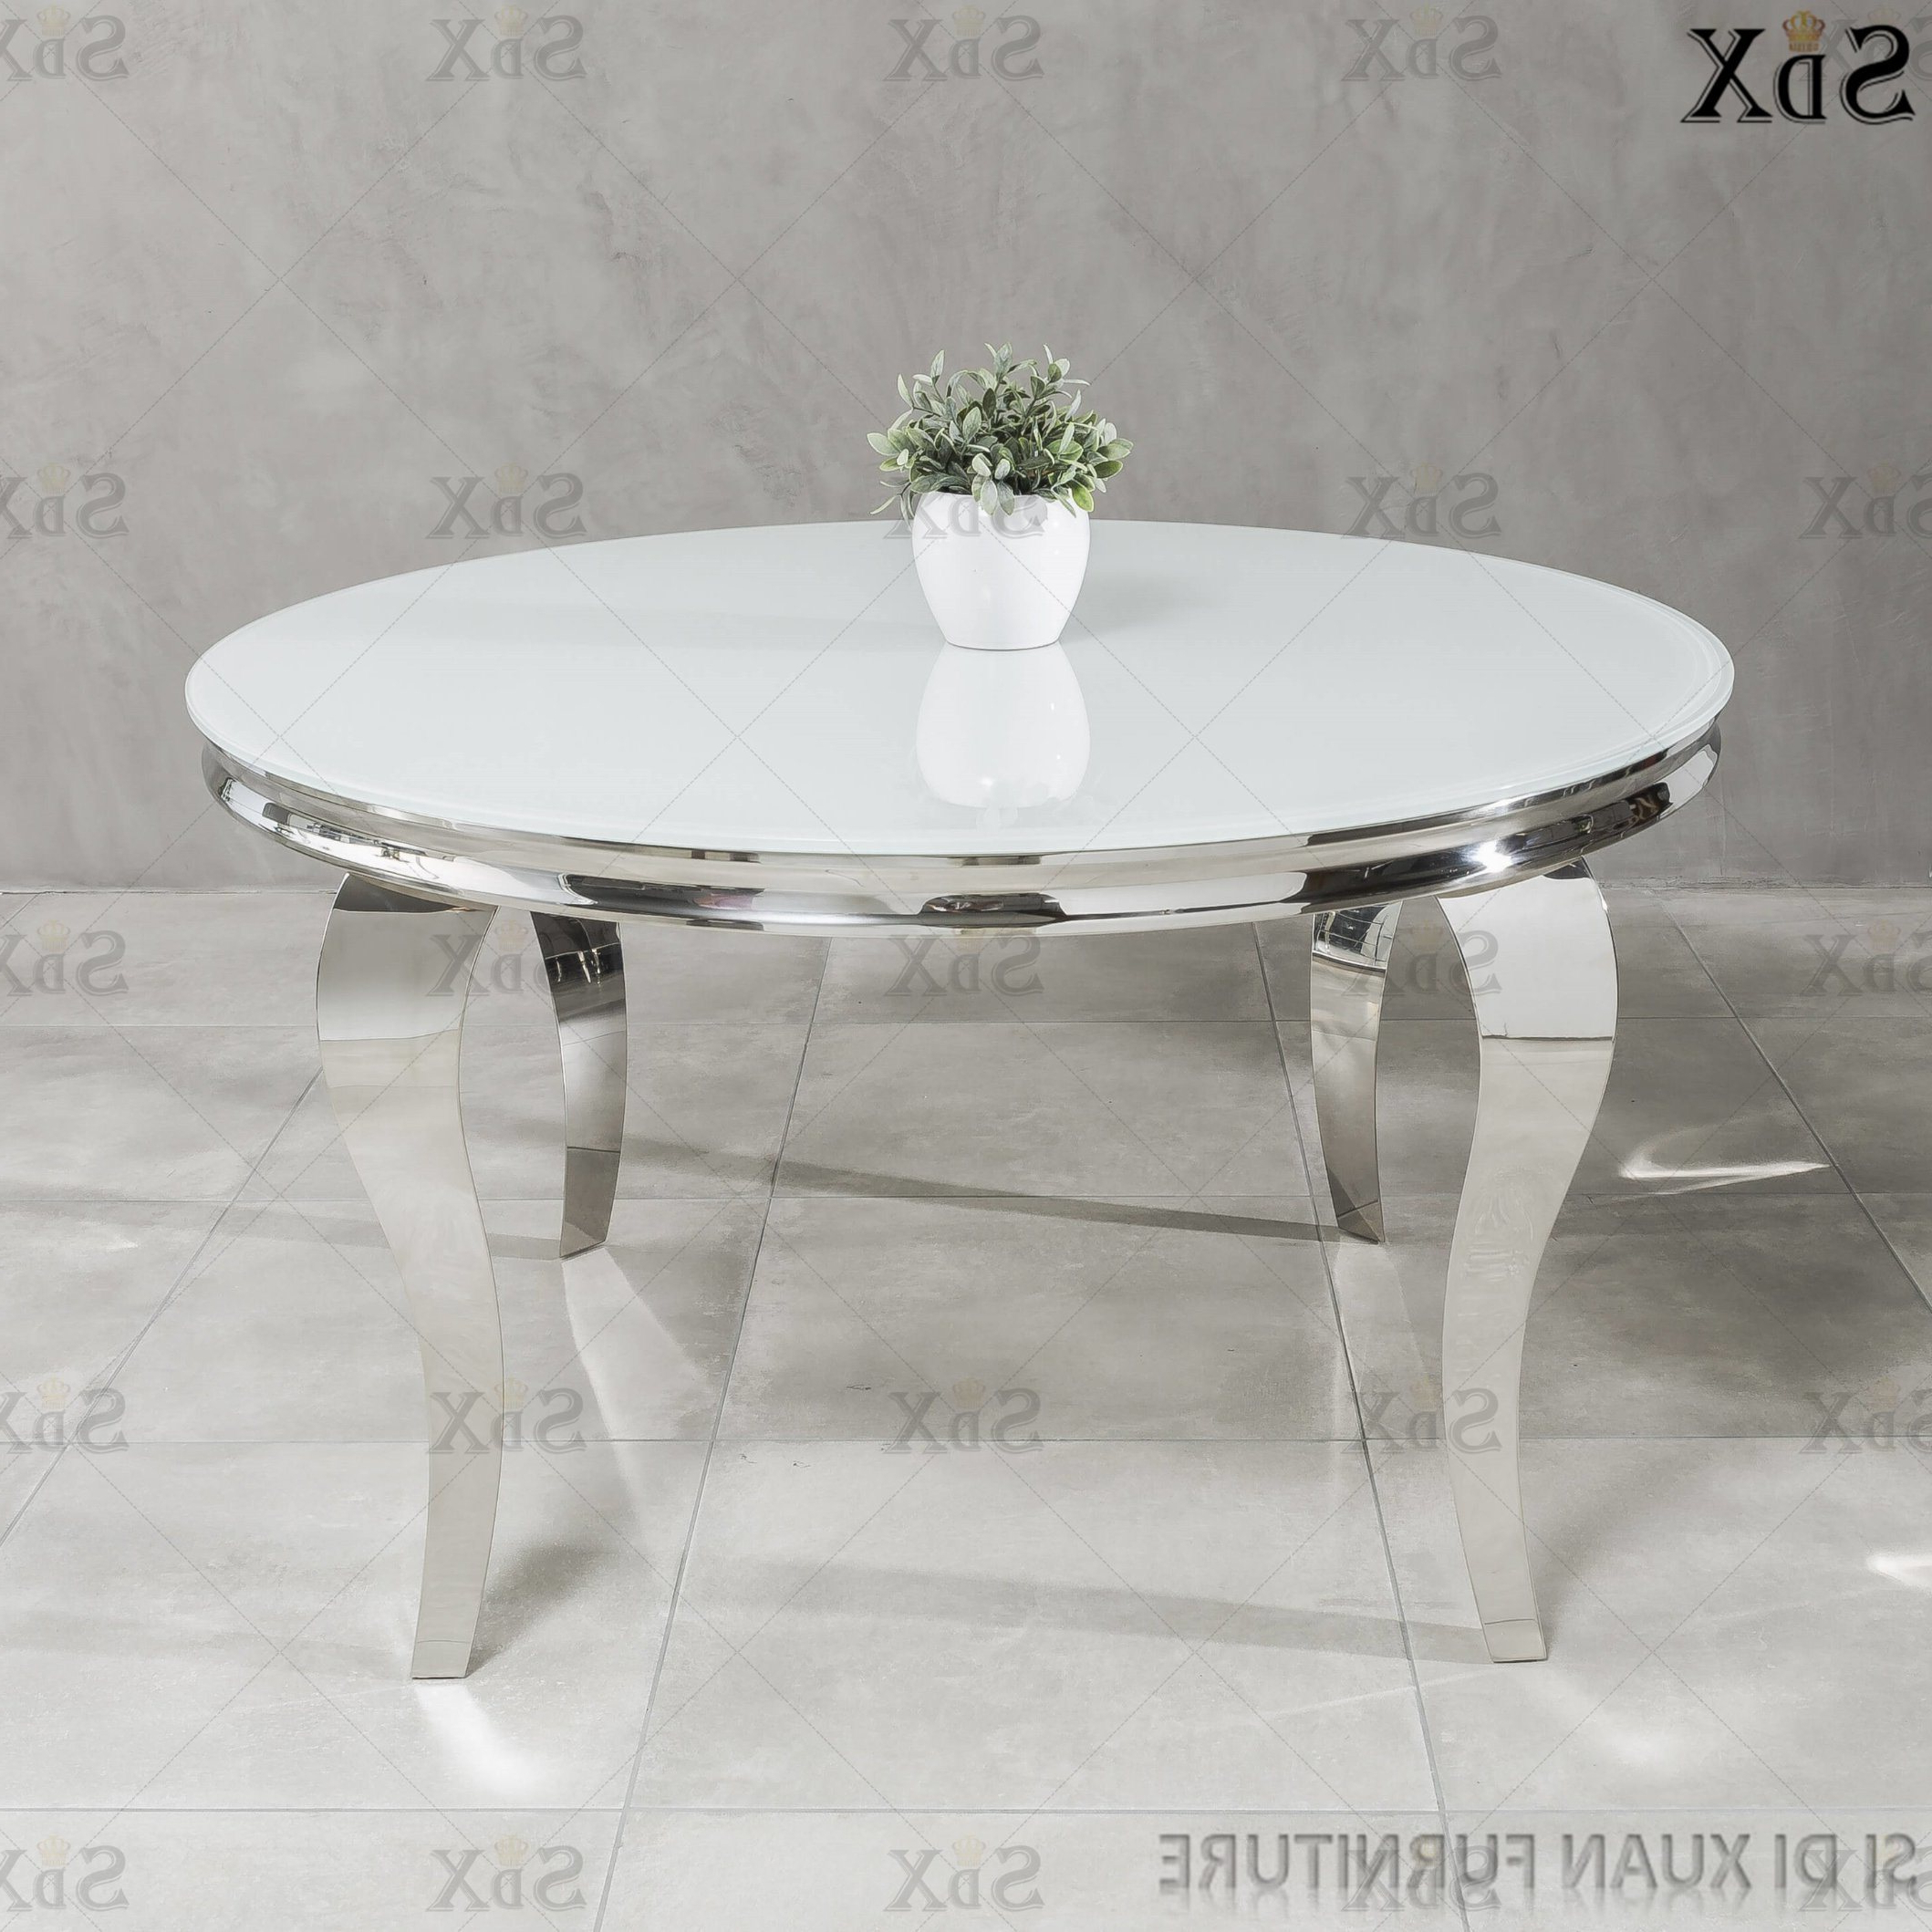 Popular Modern Round Glass Top Dining Tables For Modern Round Table Dining Room Furniture Set Glass Top (View 16 of 30)